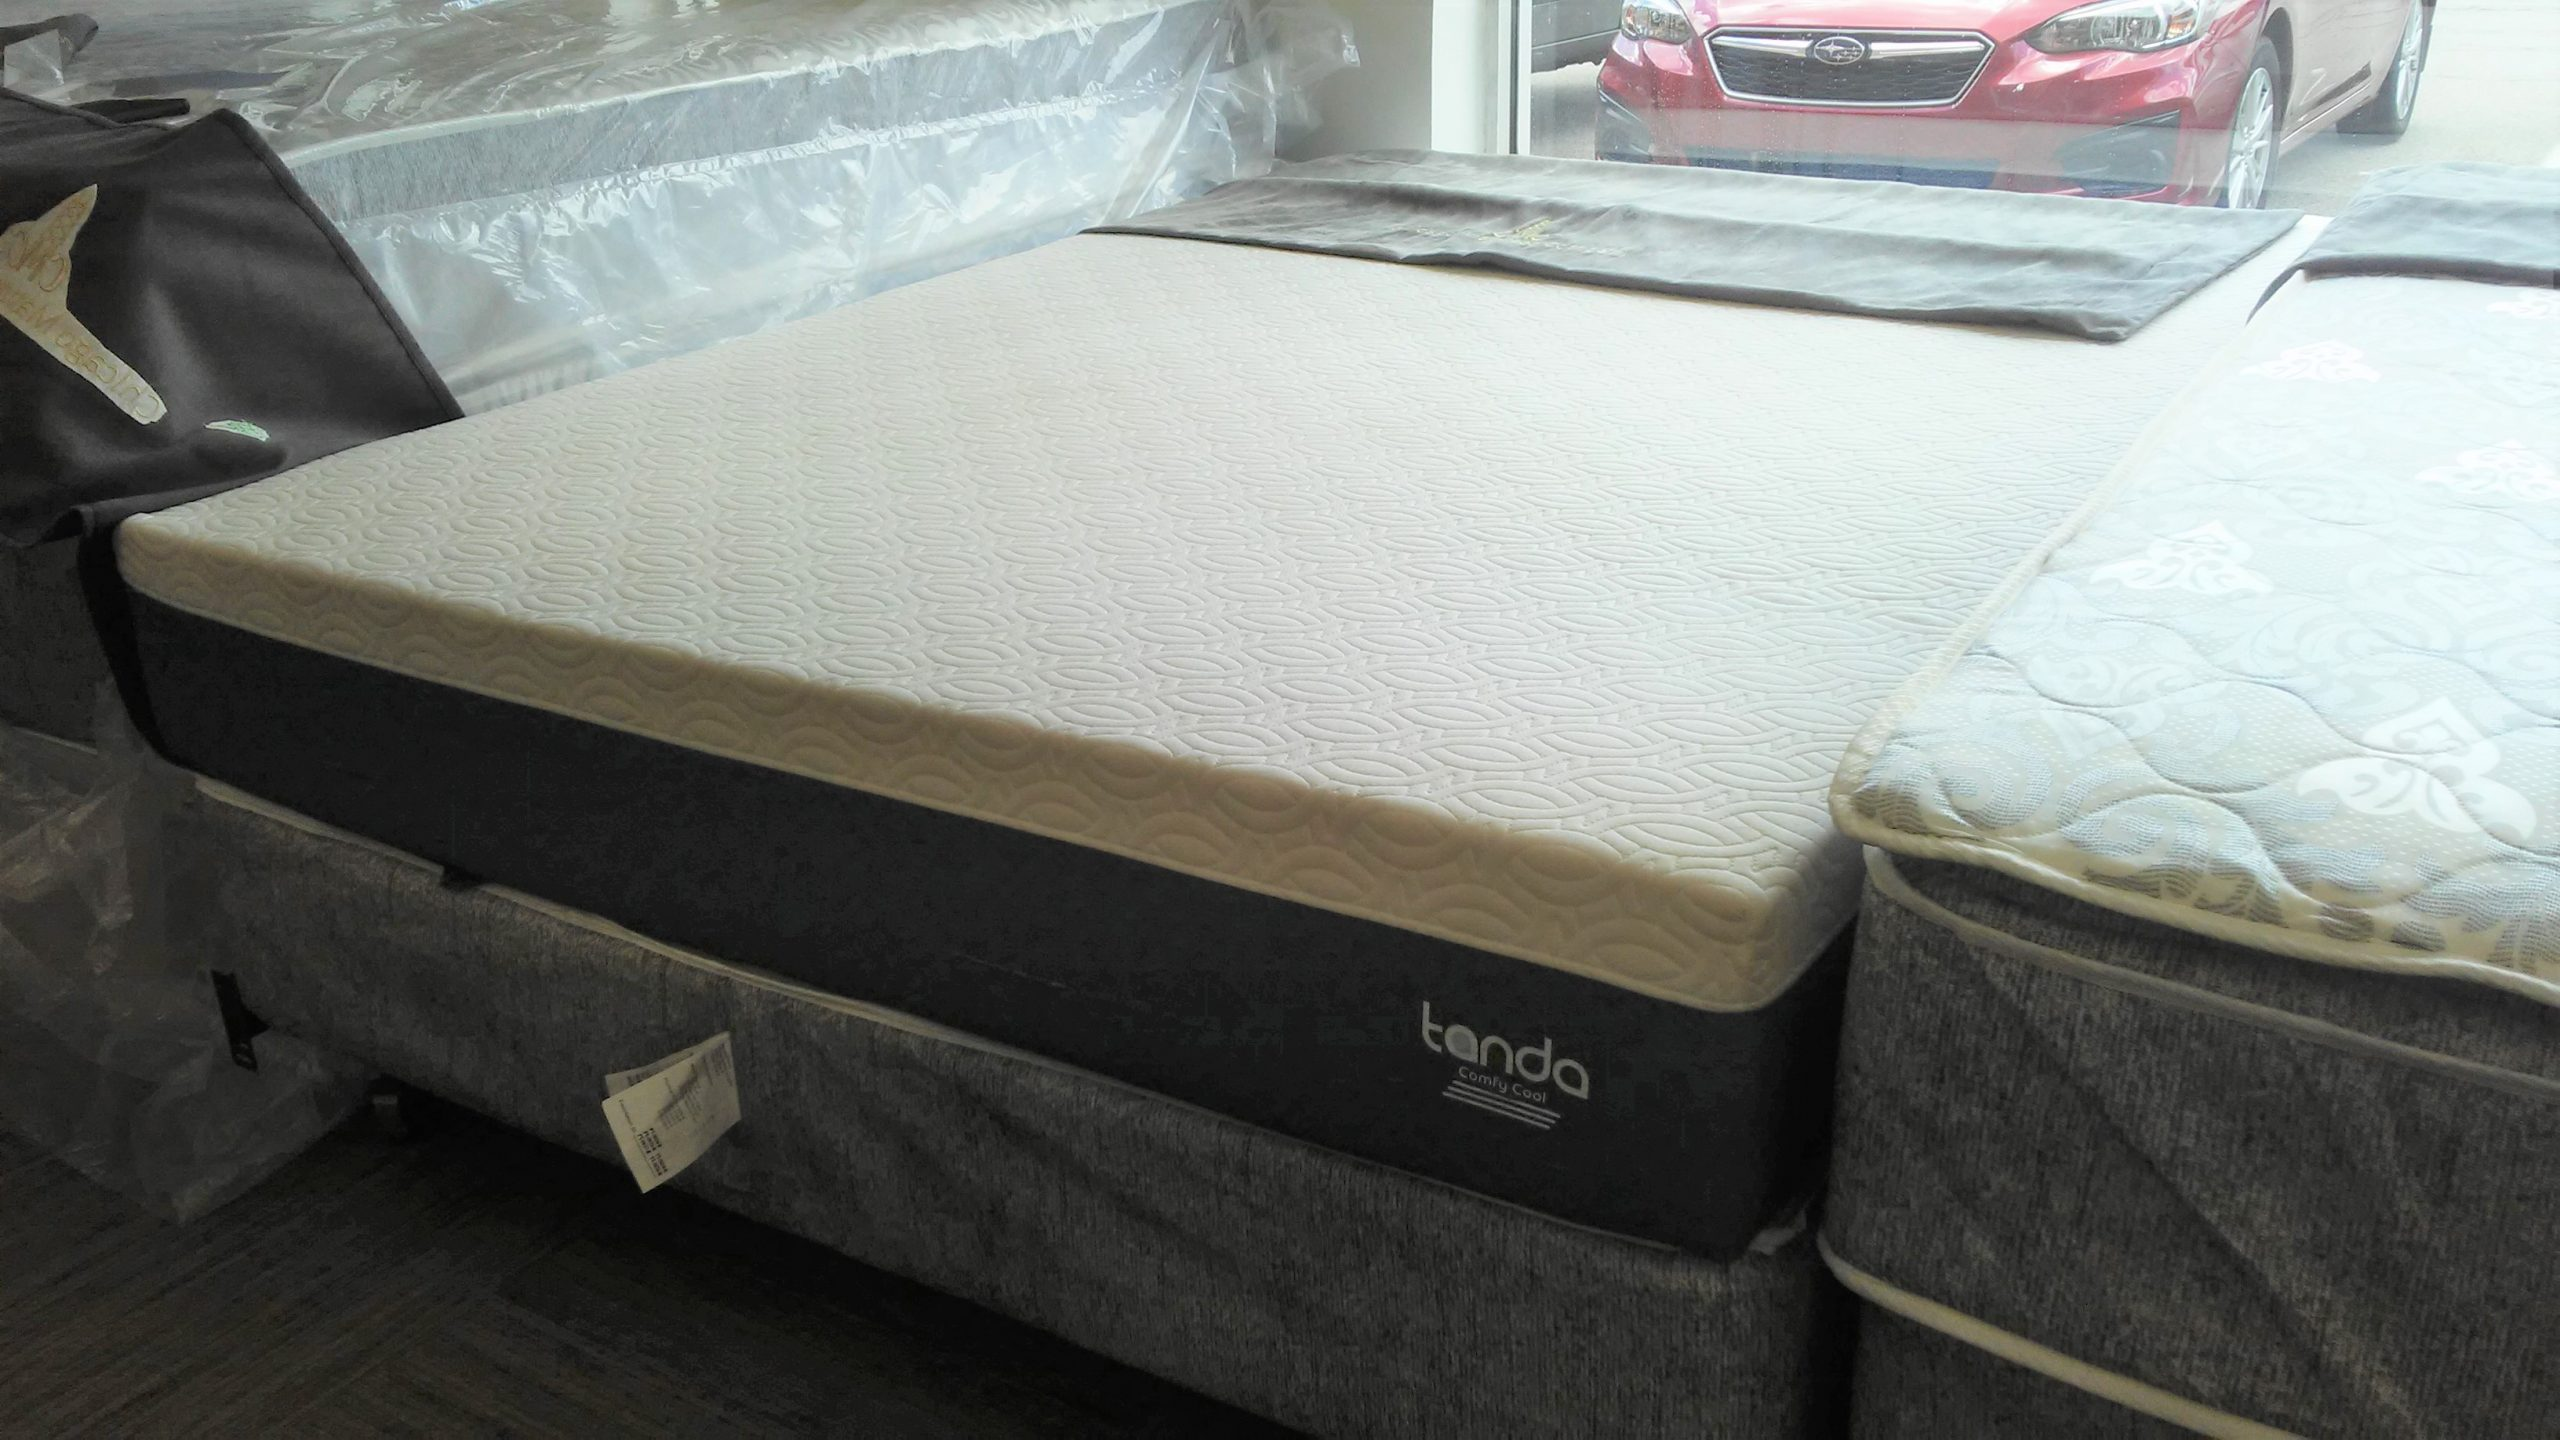 Tanda Mattress For Sale